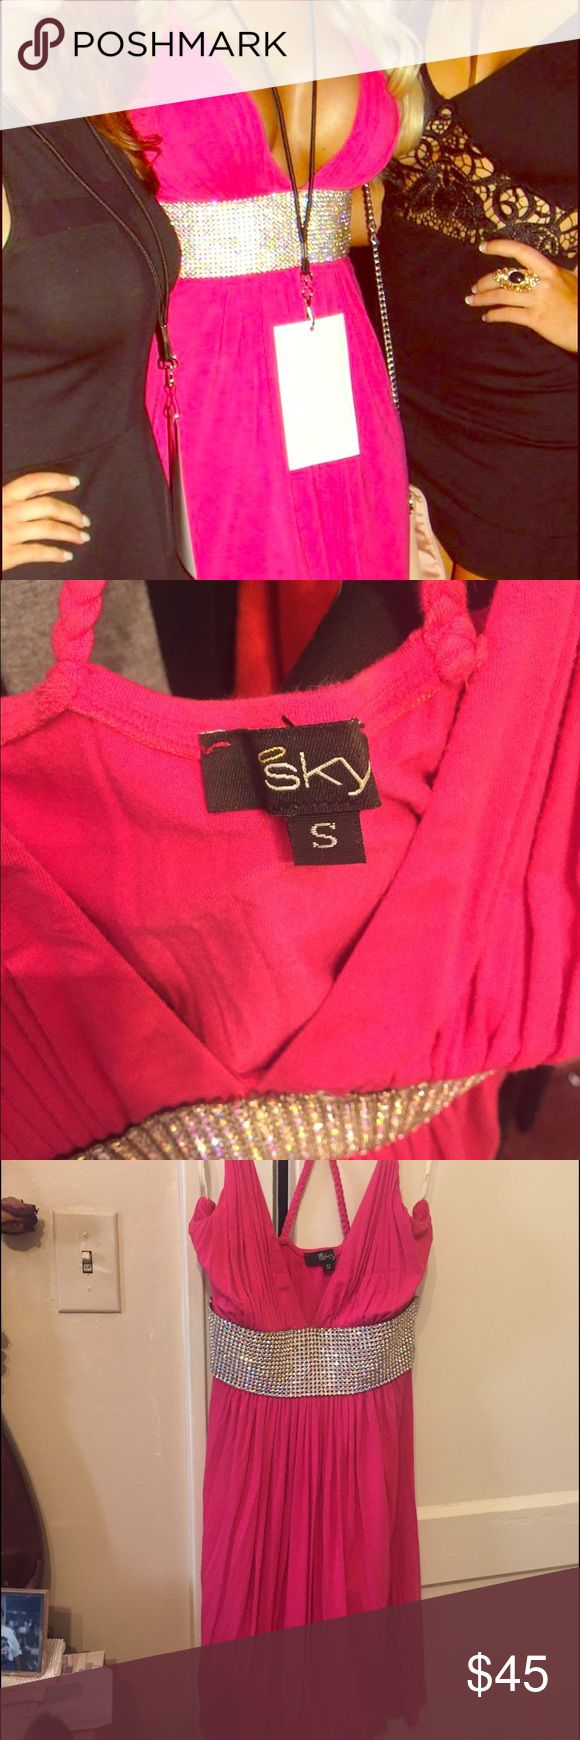 Hot pink mini dress This is a sky hot pink mini dress. With a large band of AB crystals that goes right under your breasts. Super comfortable! almost feels like you're wearing a T-shirt, the back has a Razorback pattern. If you're a blonde this is the total Barbie dress! Sky Dresses Mini